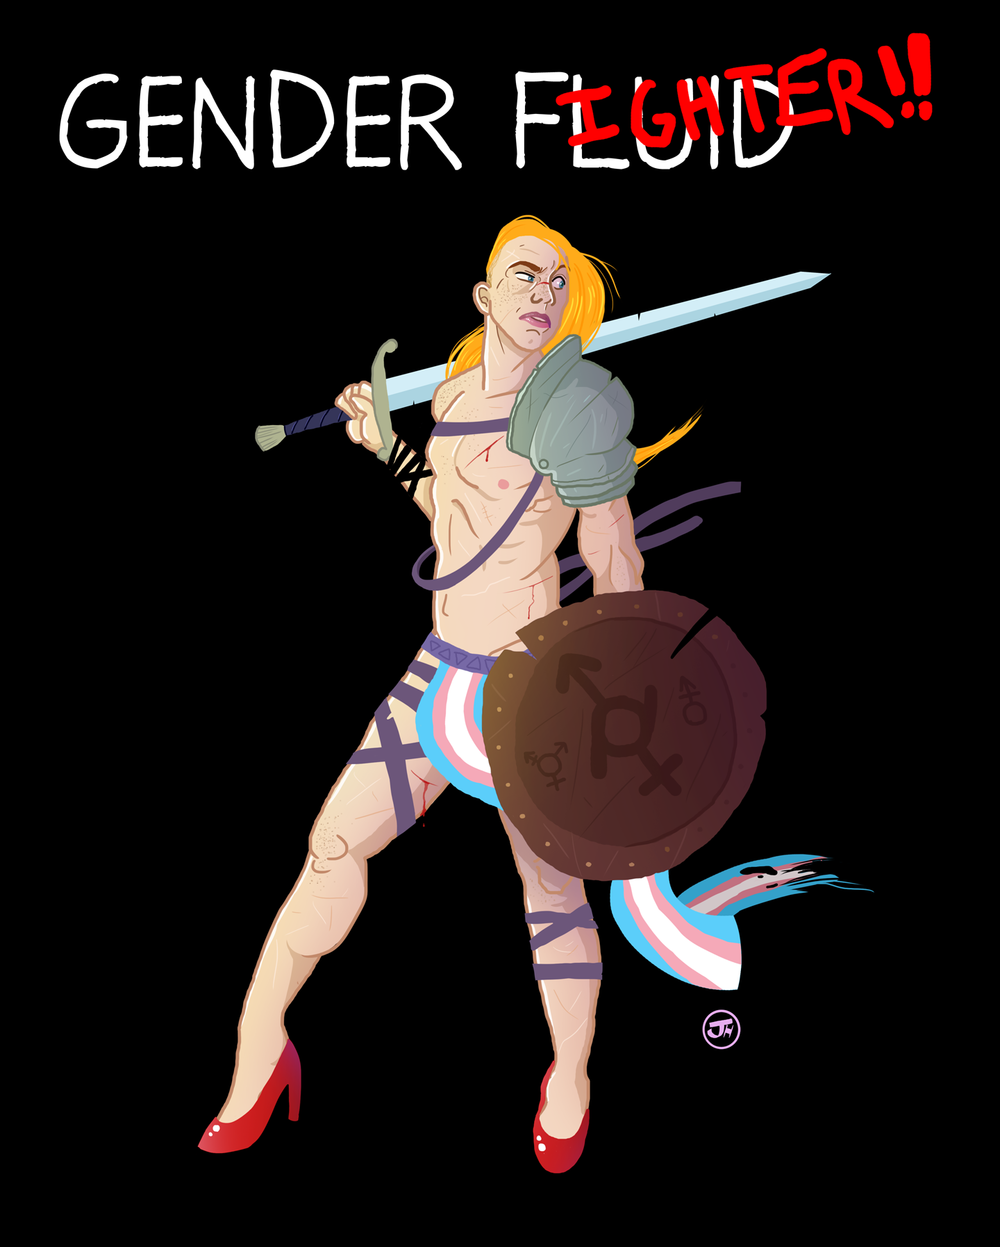 JH gender_fl__fighter___by_justinhubbell-d9xh1i4.png